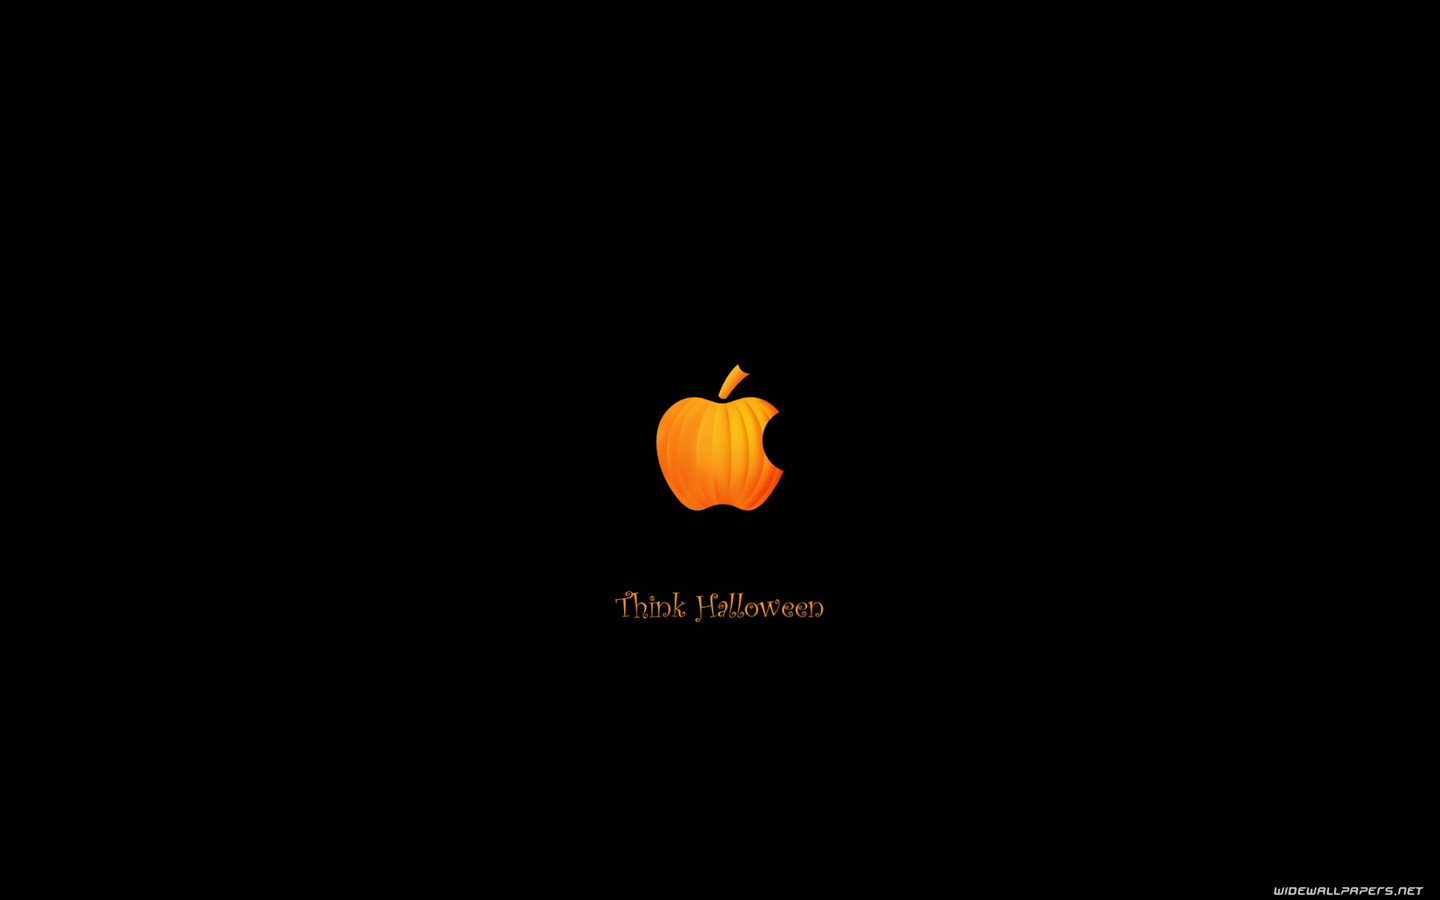 Wallpapers mom: Superb HD wallpapers